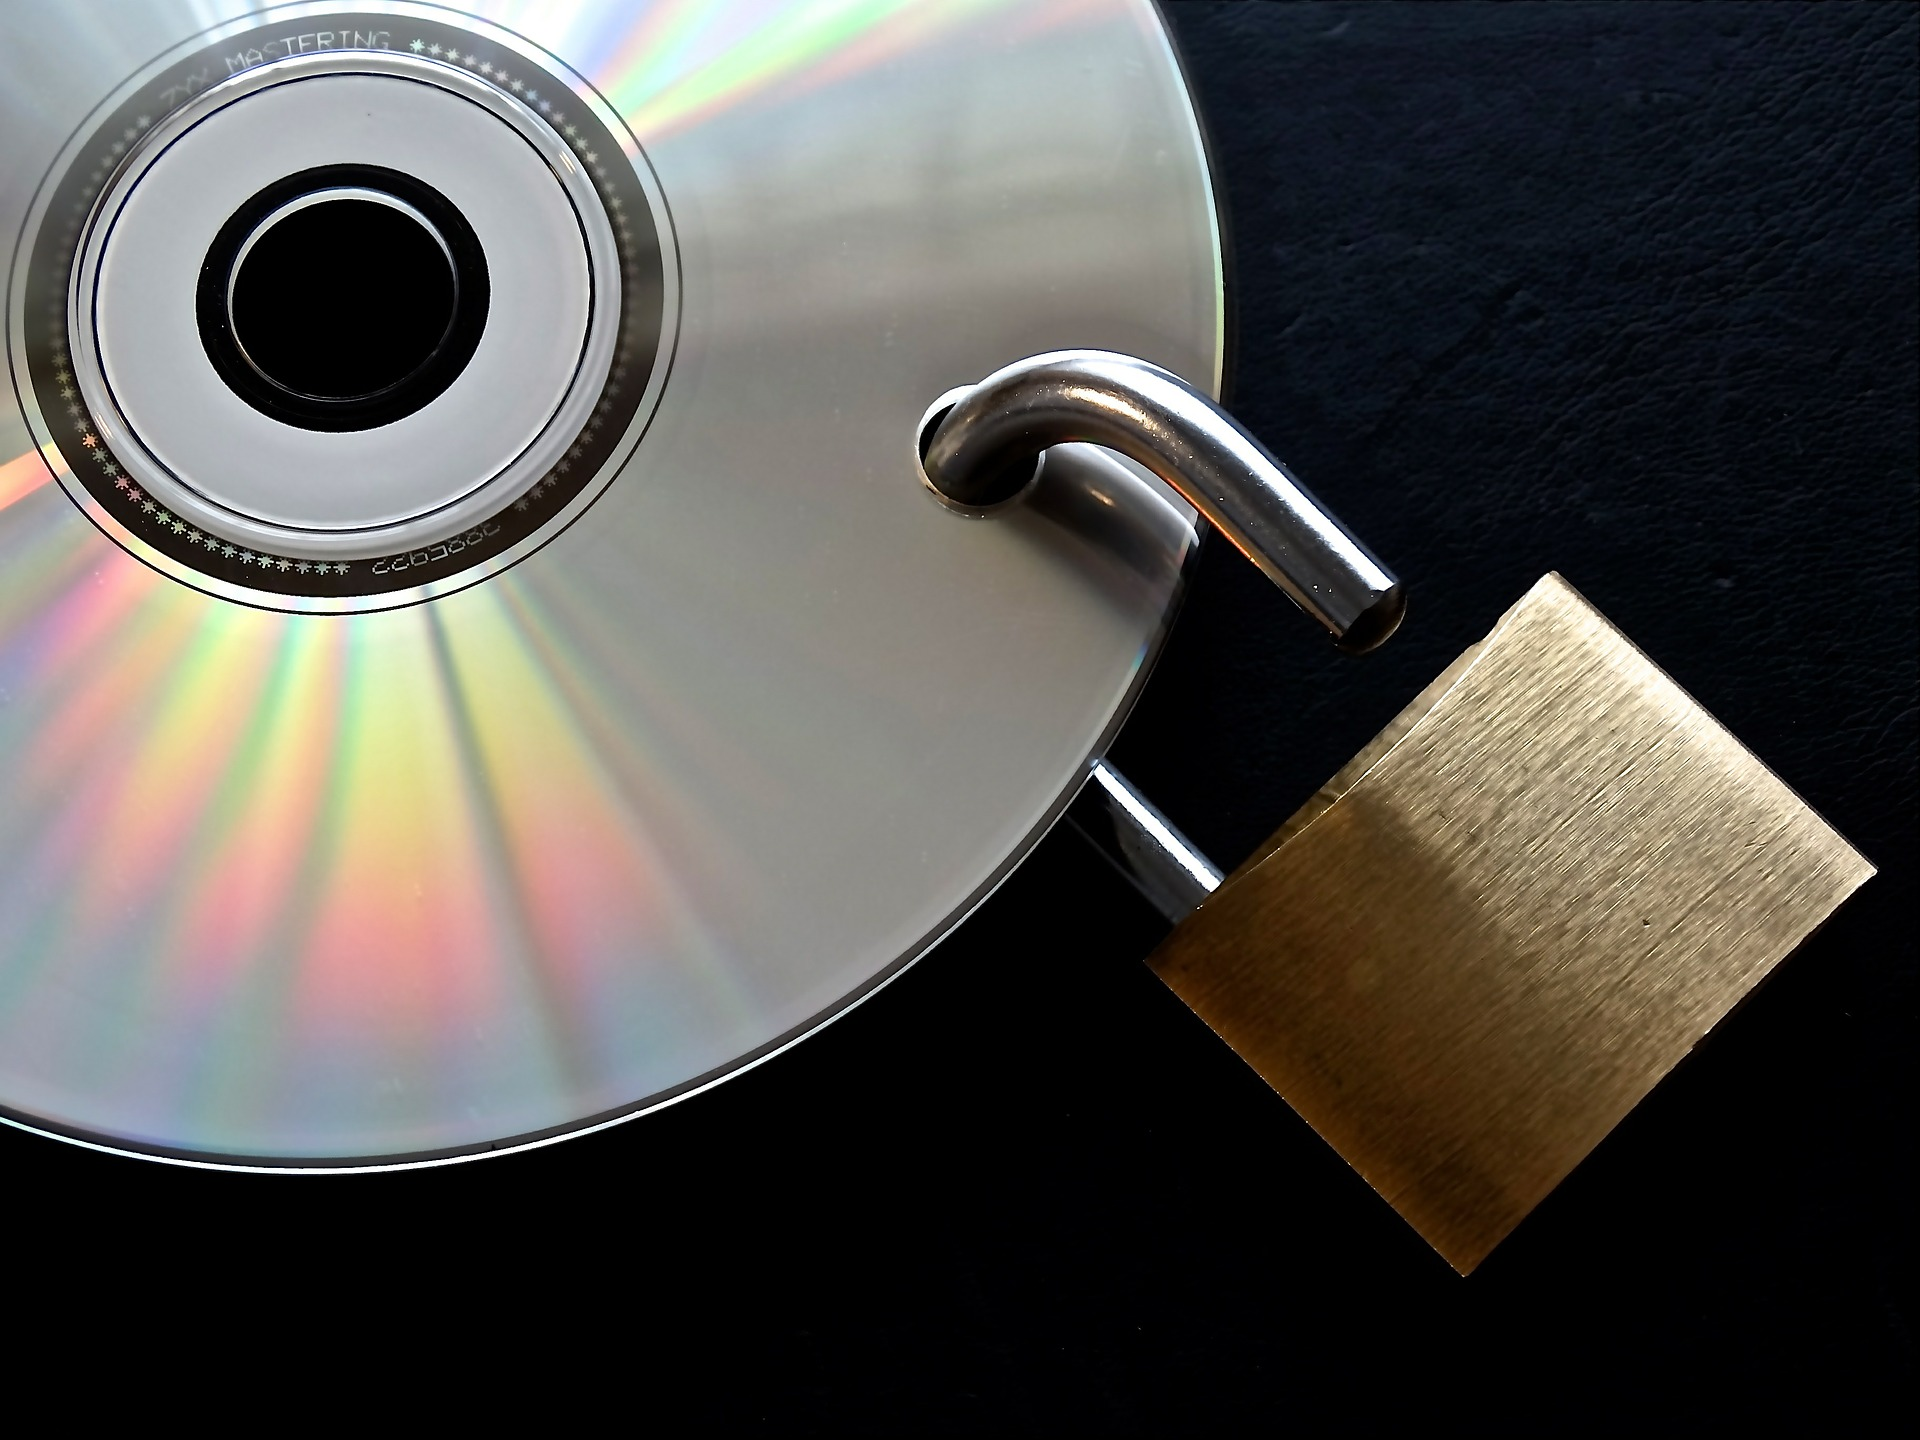 photo of CD with padlock